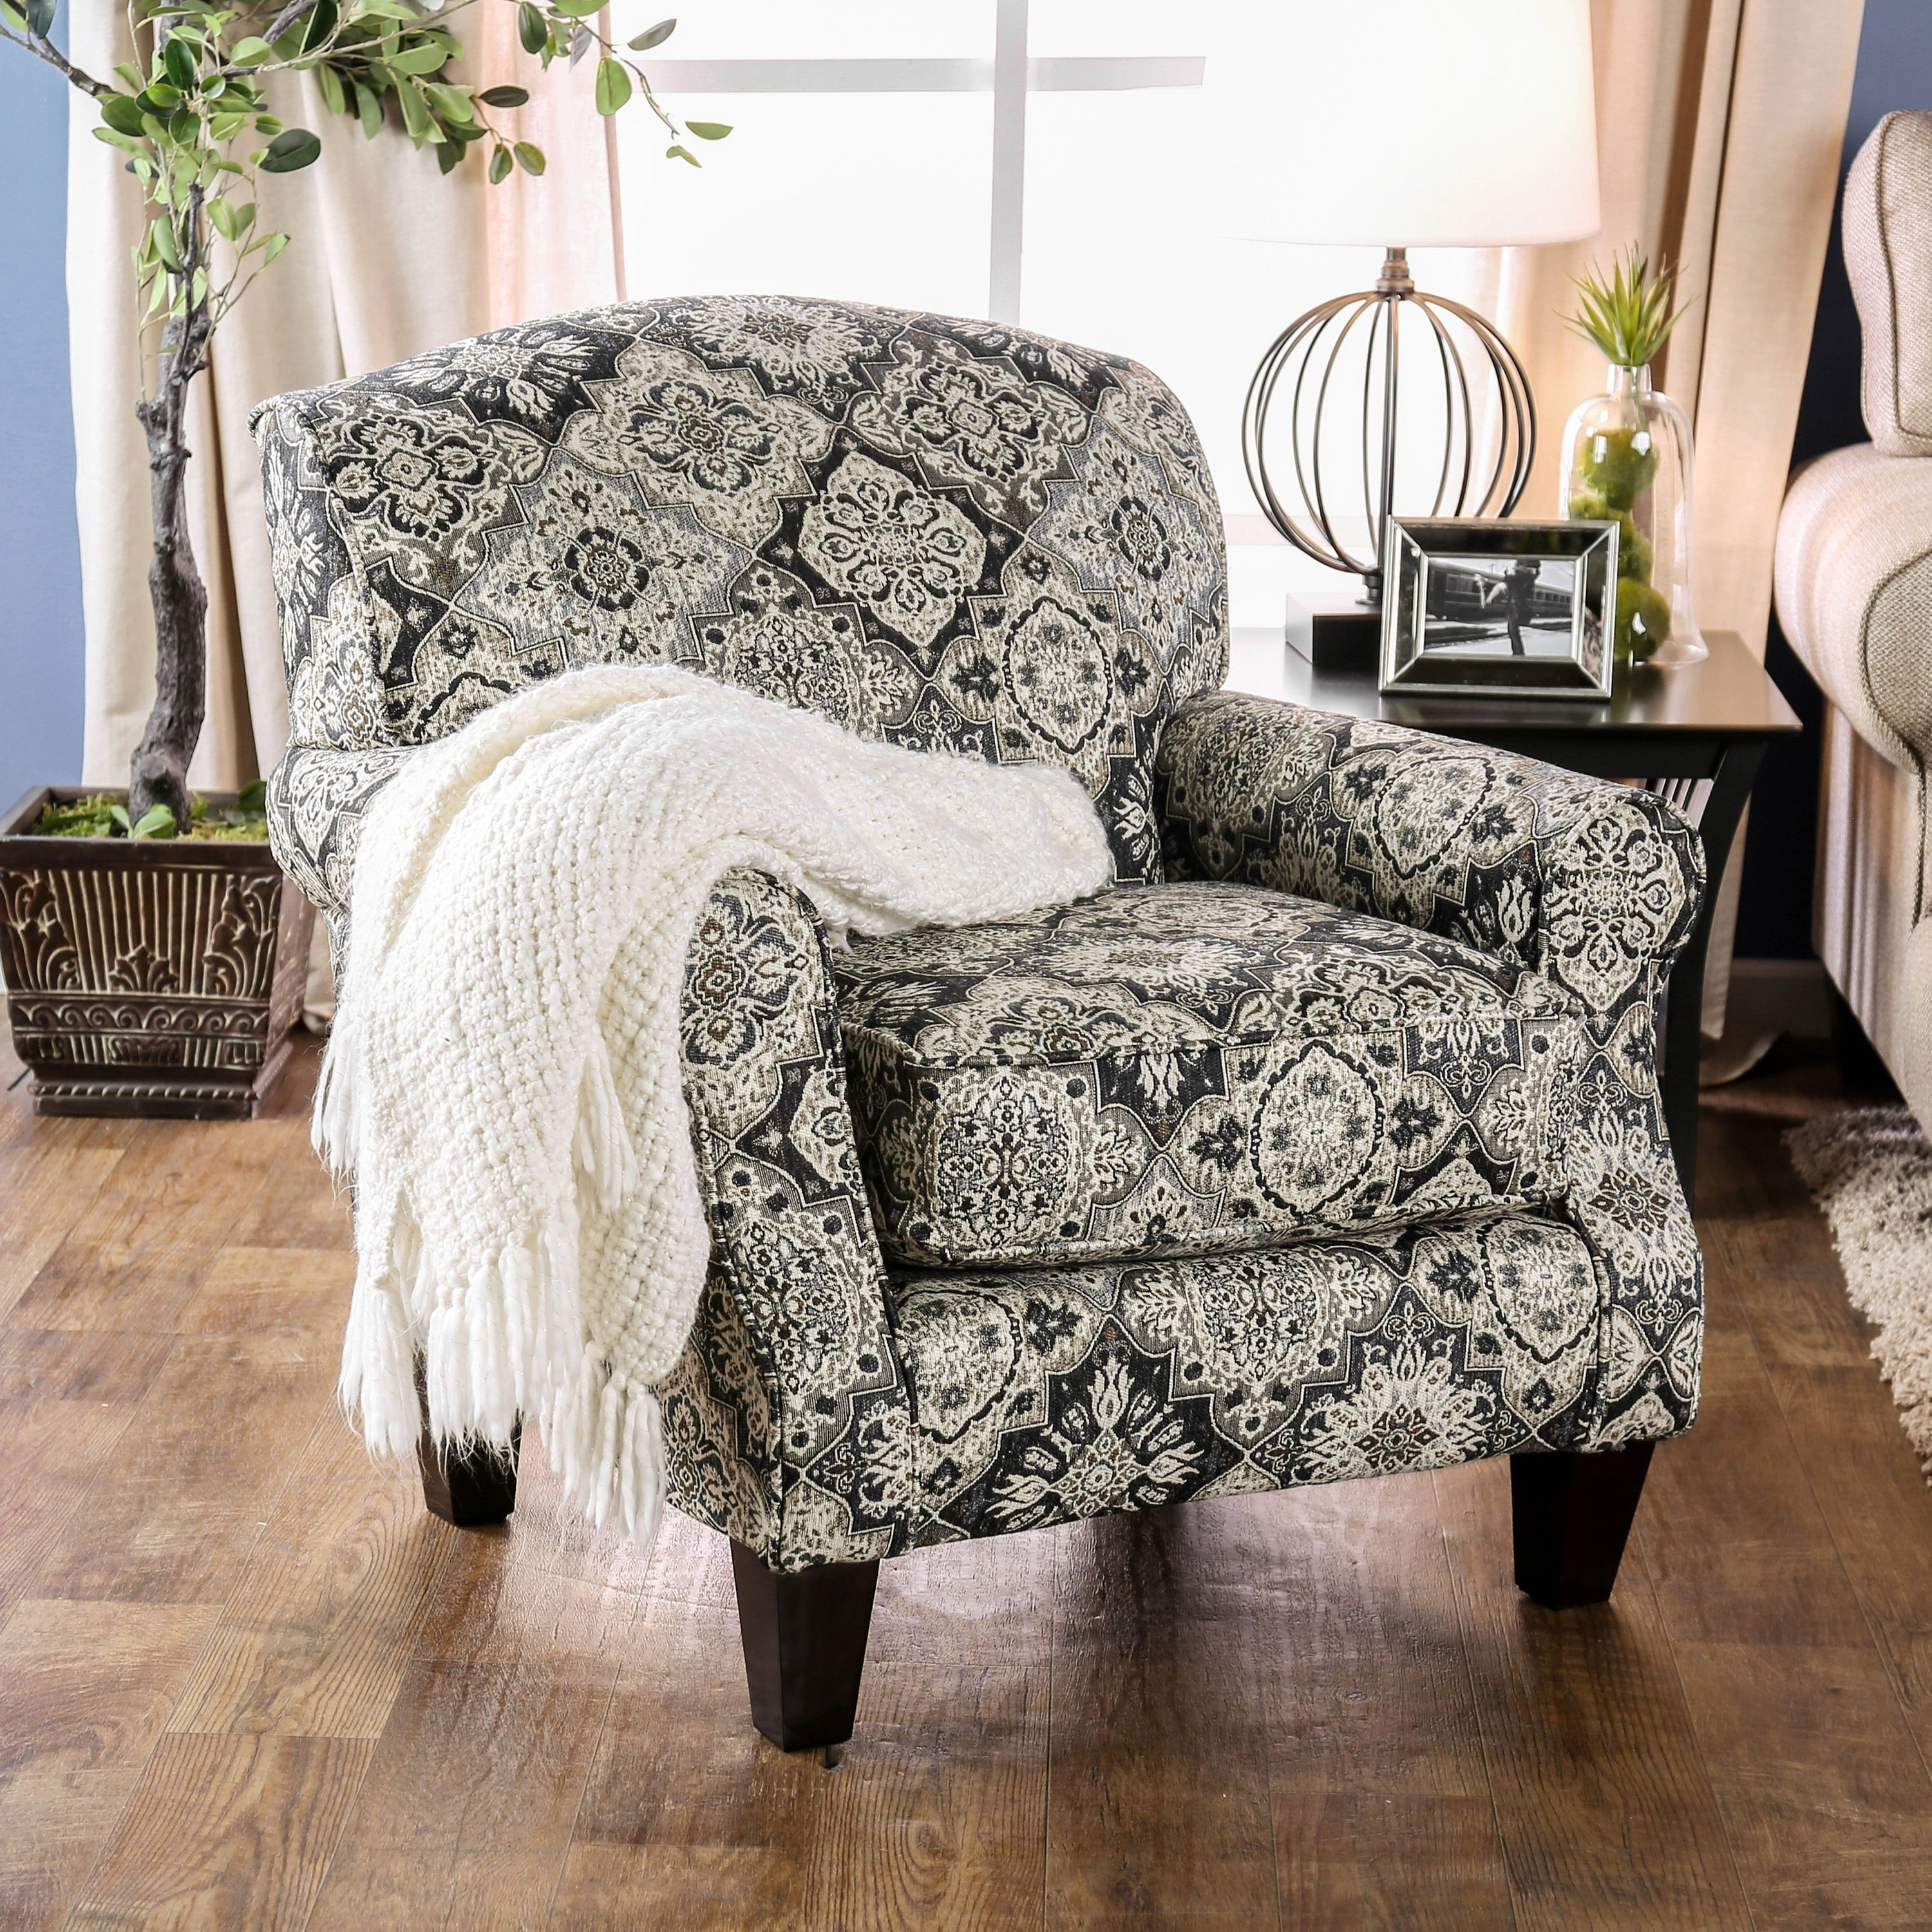 Moro Transitional White Stain Resistant Floral Accent Chair by FOA (Floral)